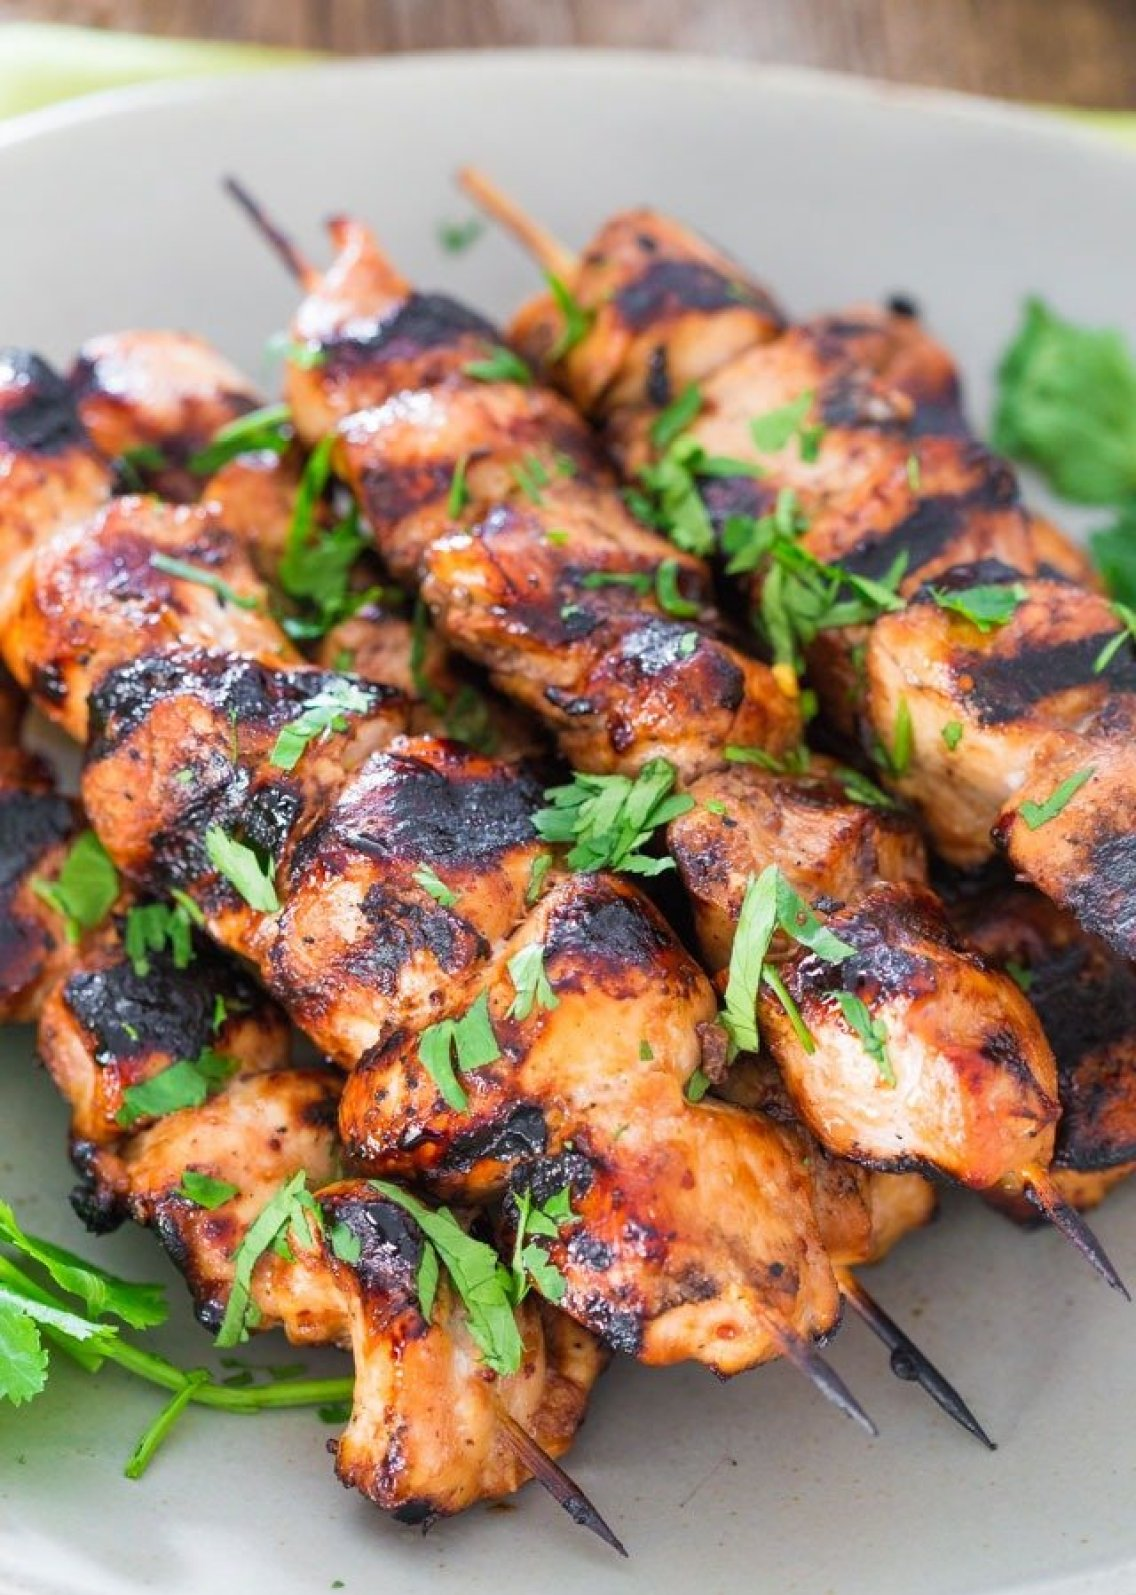 10 Amazing Homemade Skewers Recipes For Summer Grilling